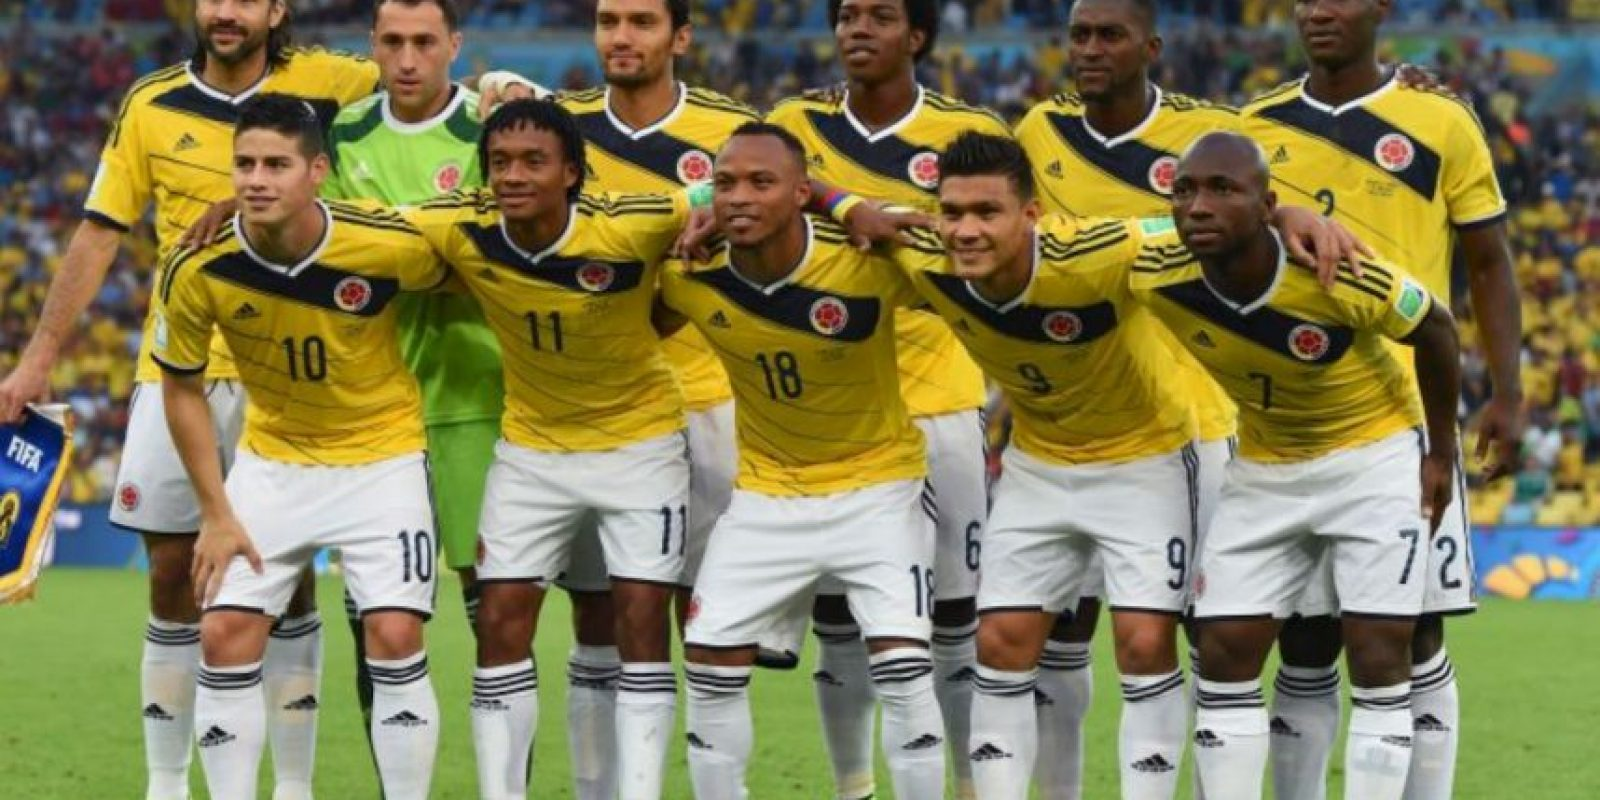 4. Colombia Foto: Getty Images